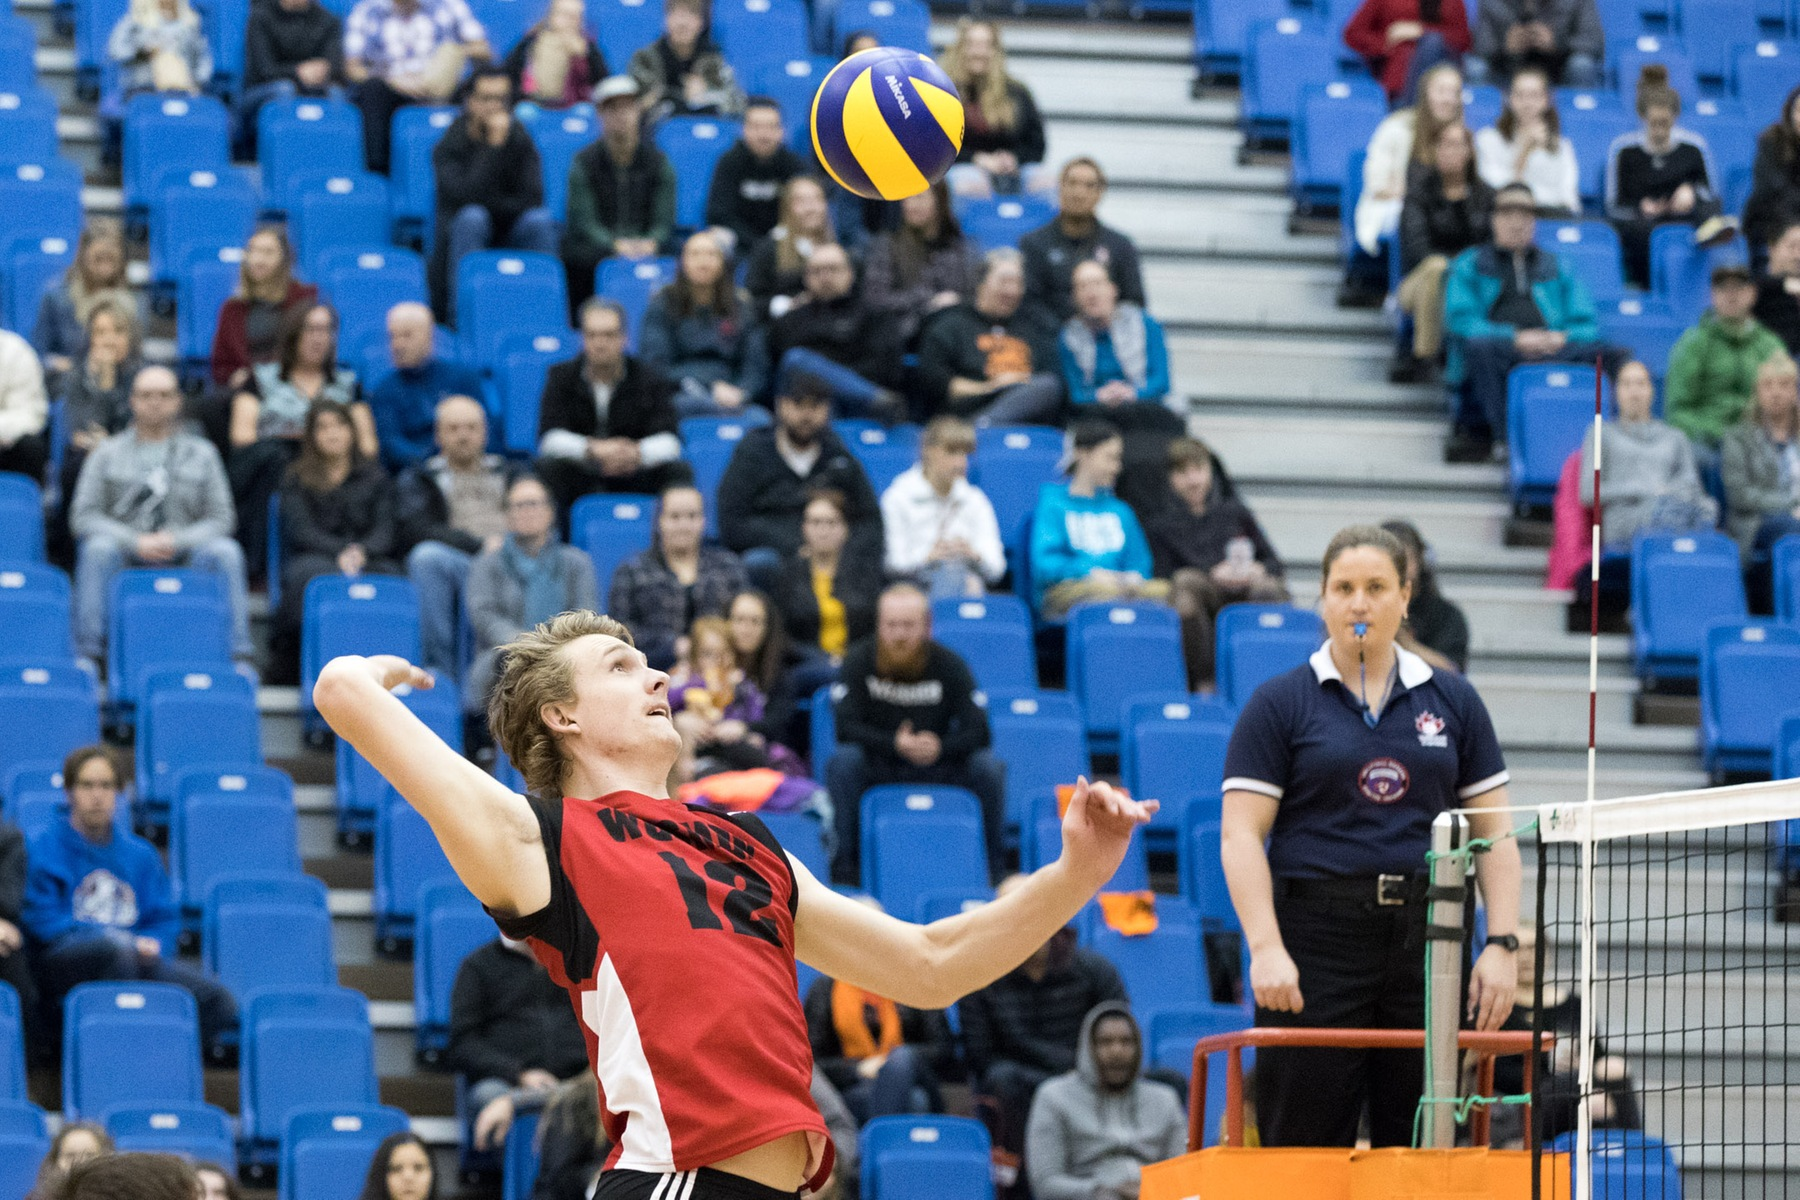 Middle blocker Garrett Jones takes a swing during the Wesmen's match with the Thompson Rivers Wolfpack, Saturday, Nov. 17, 2018 in Kamloops, B.C. (Andrew Snucins/TRU Athletics)